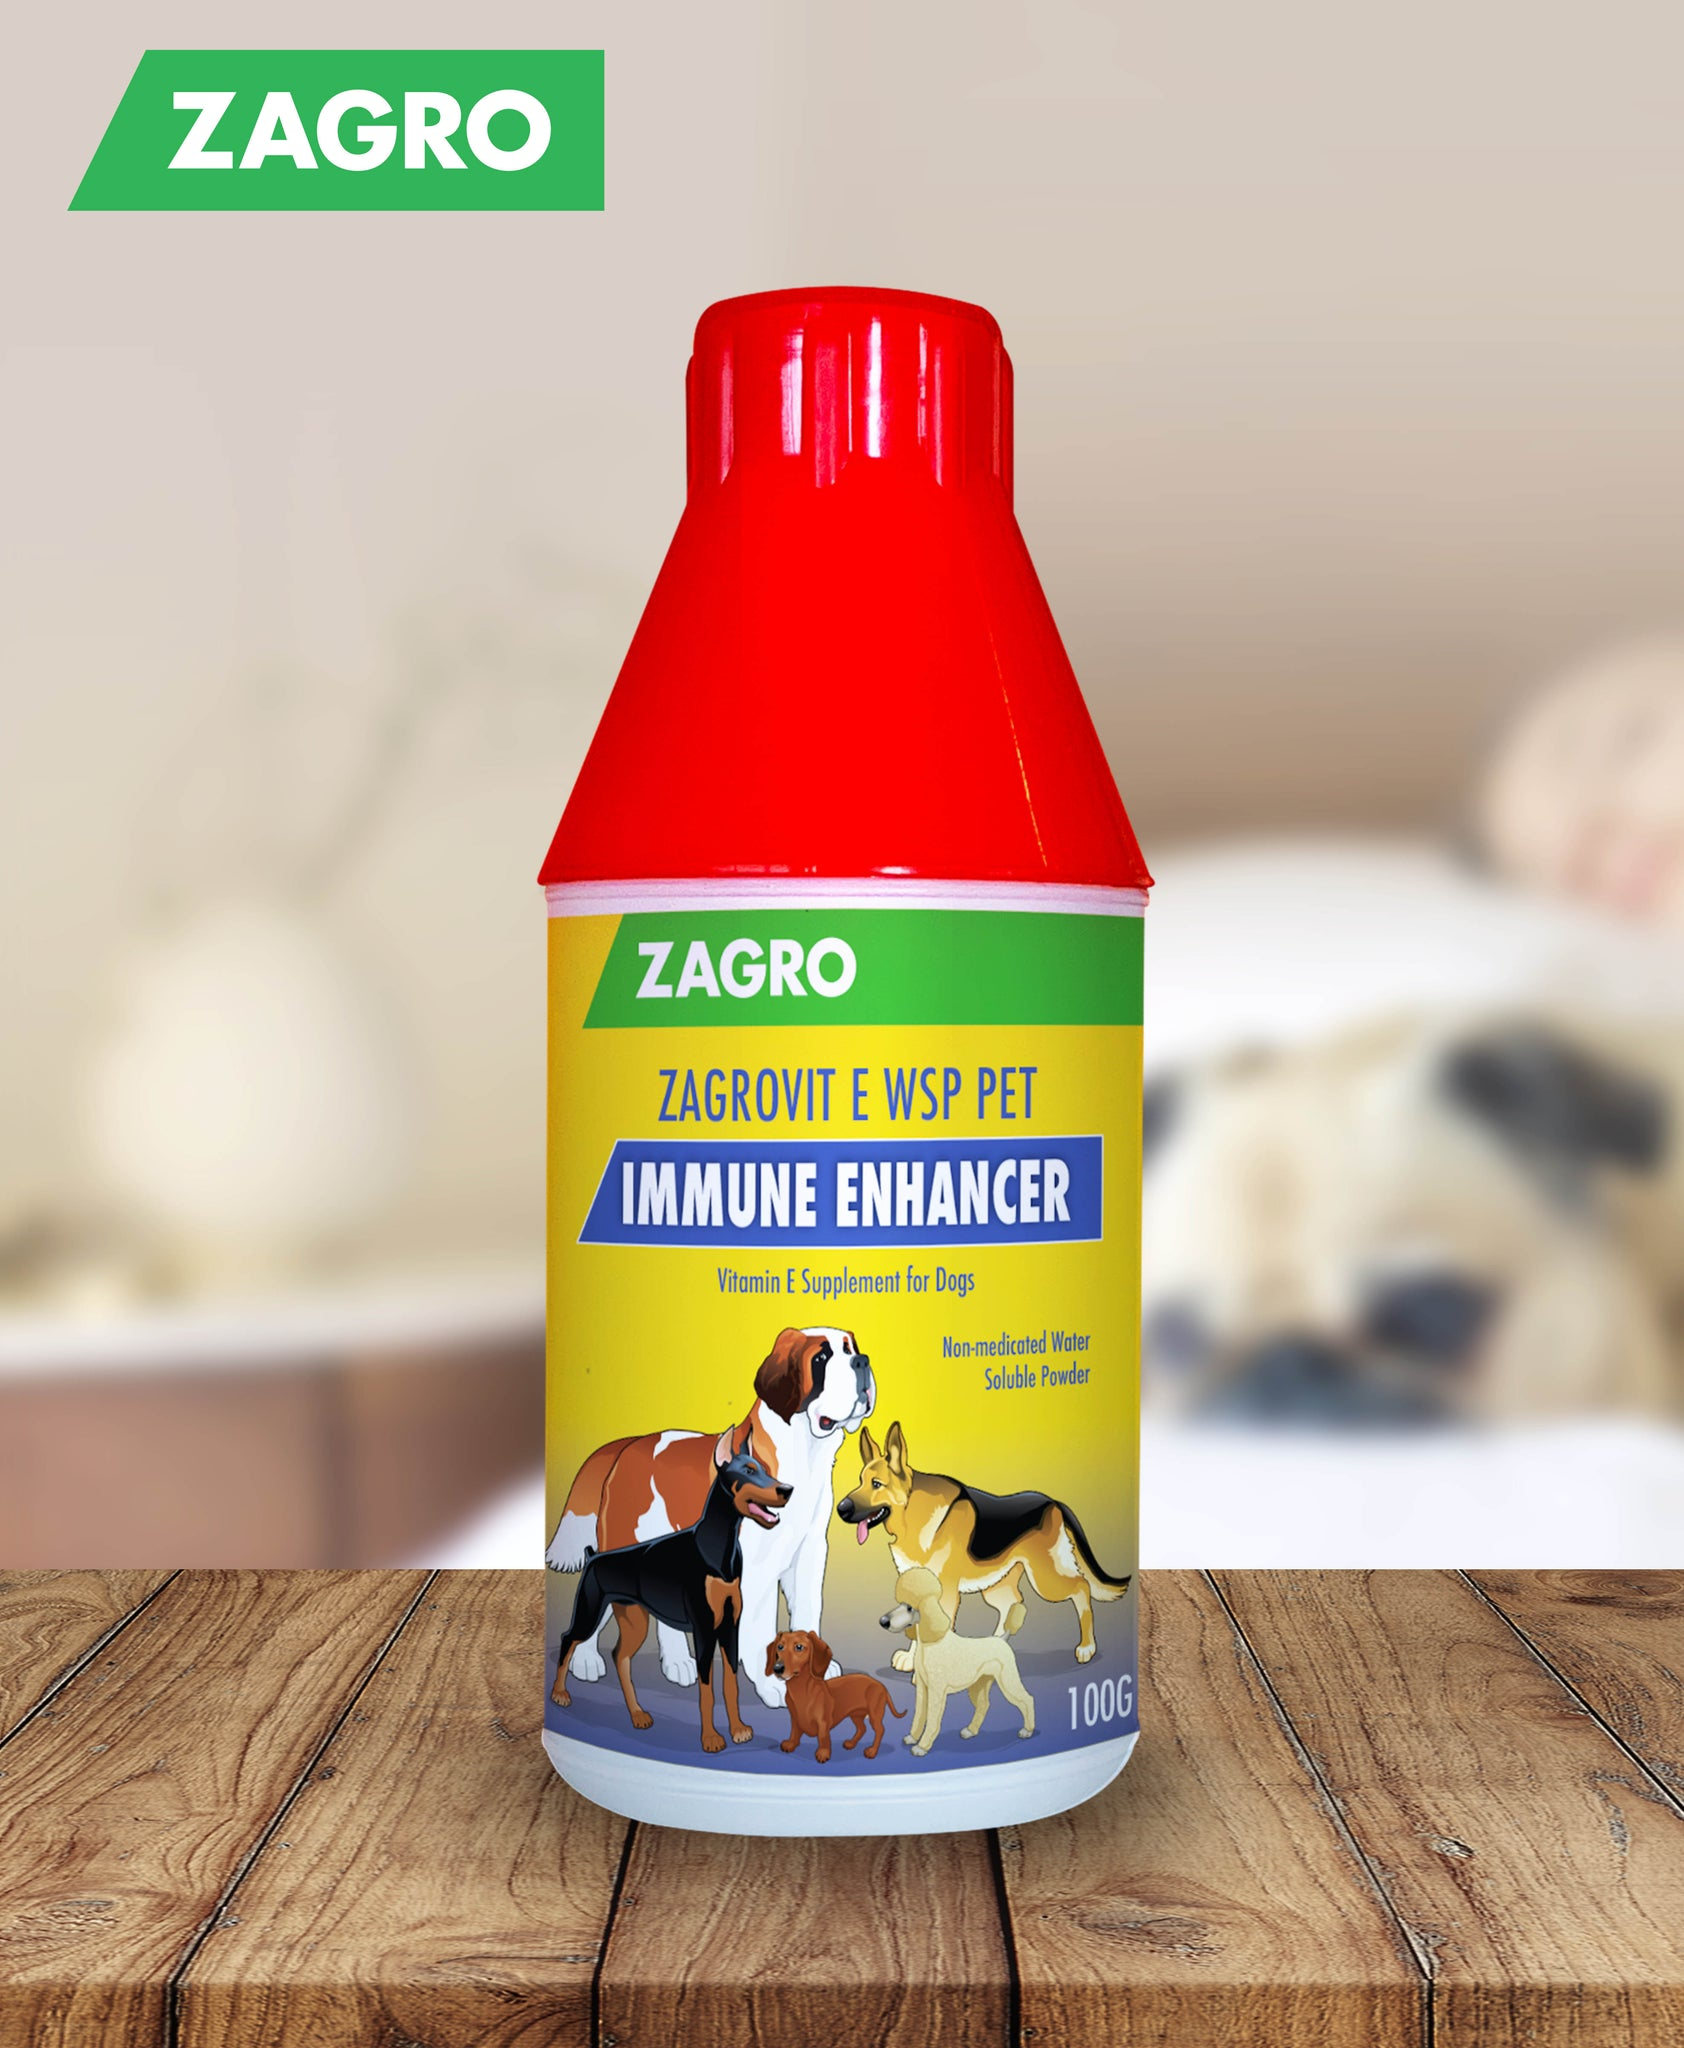 Zagrovit E WSP Pet (Vitamin E Supplement) 100gm